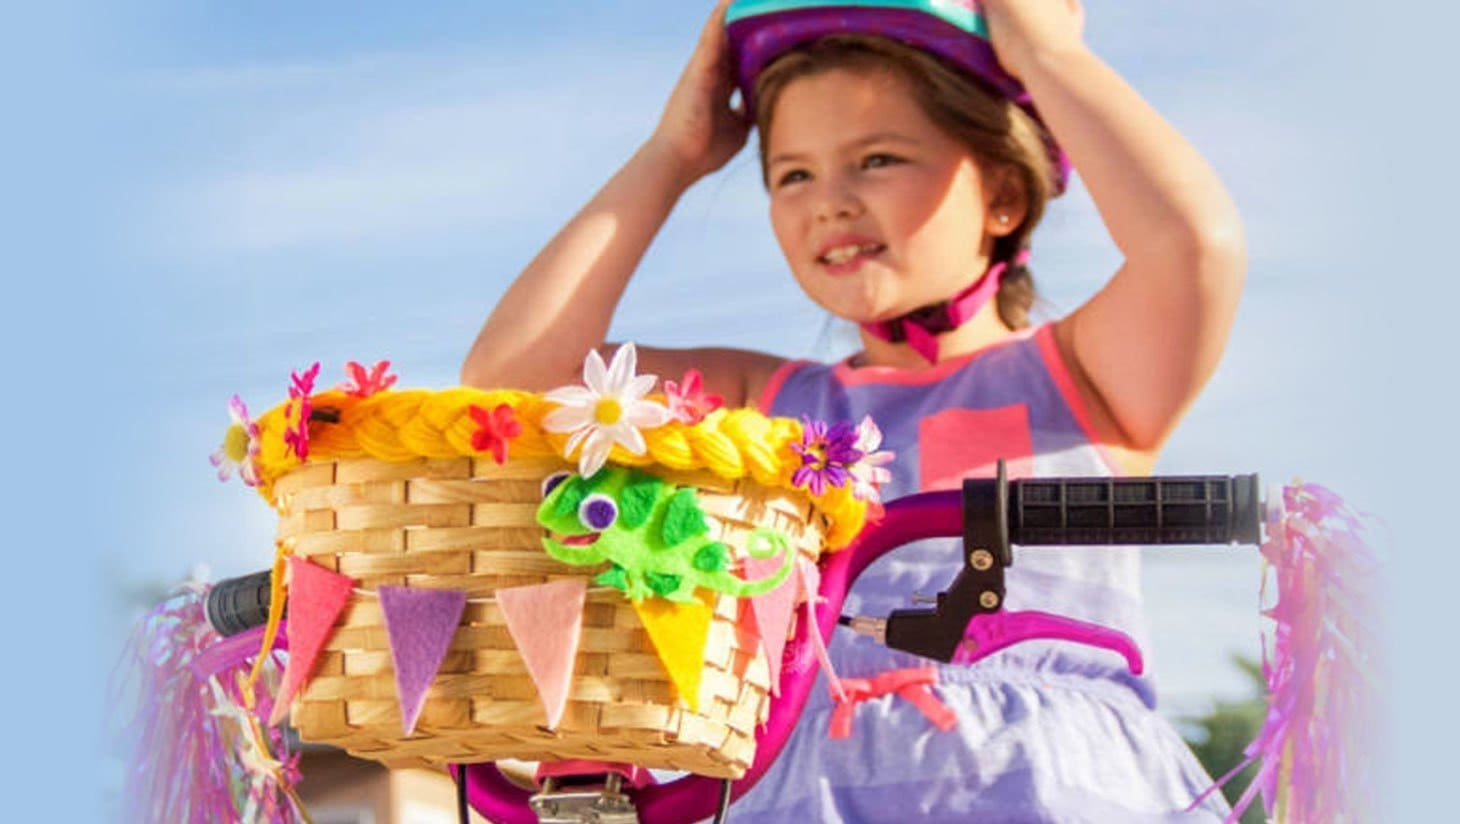 A young girl on a bike with a Tangled themed basket